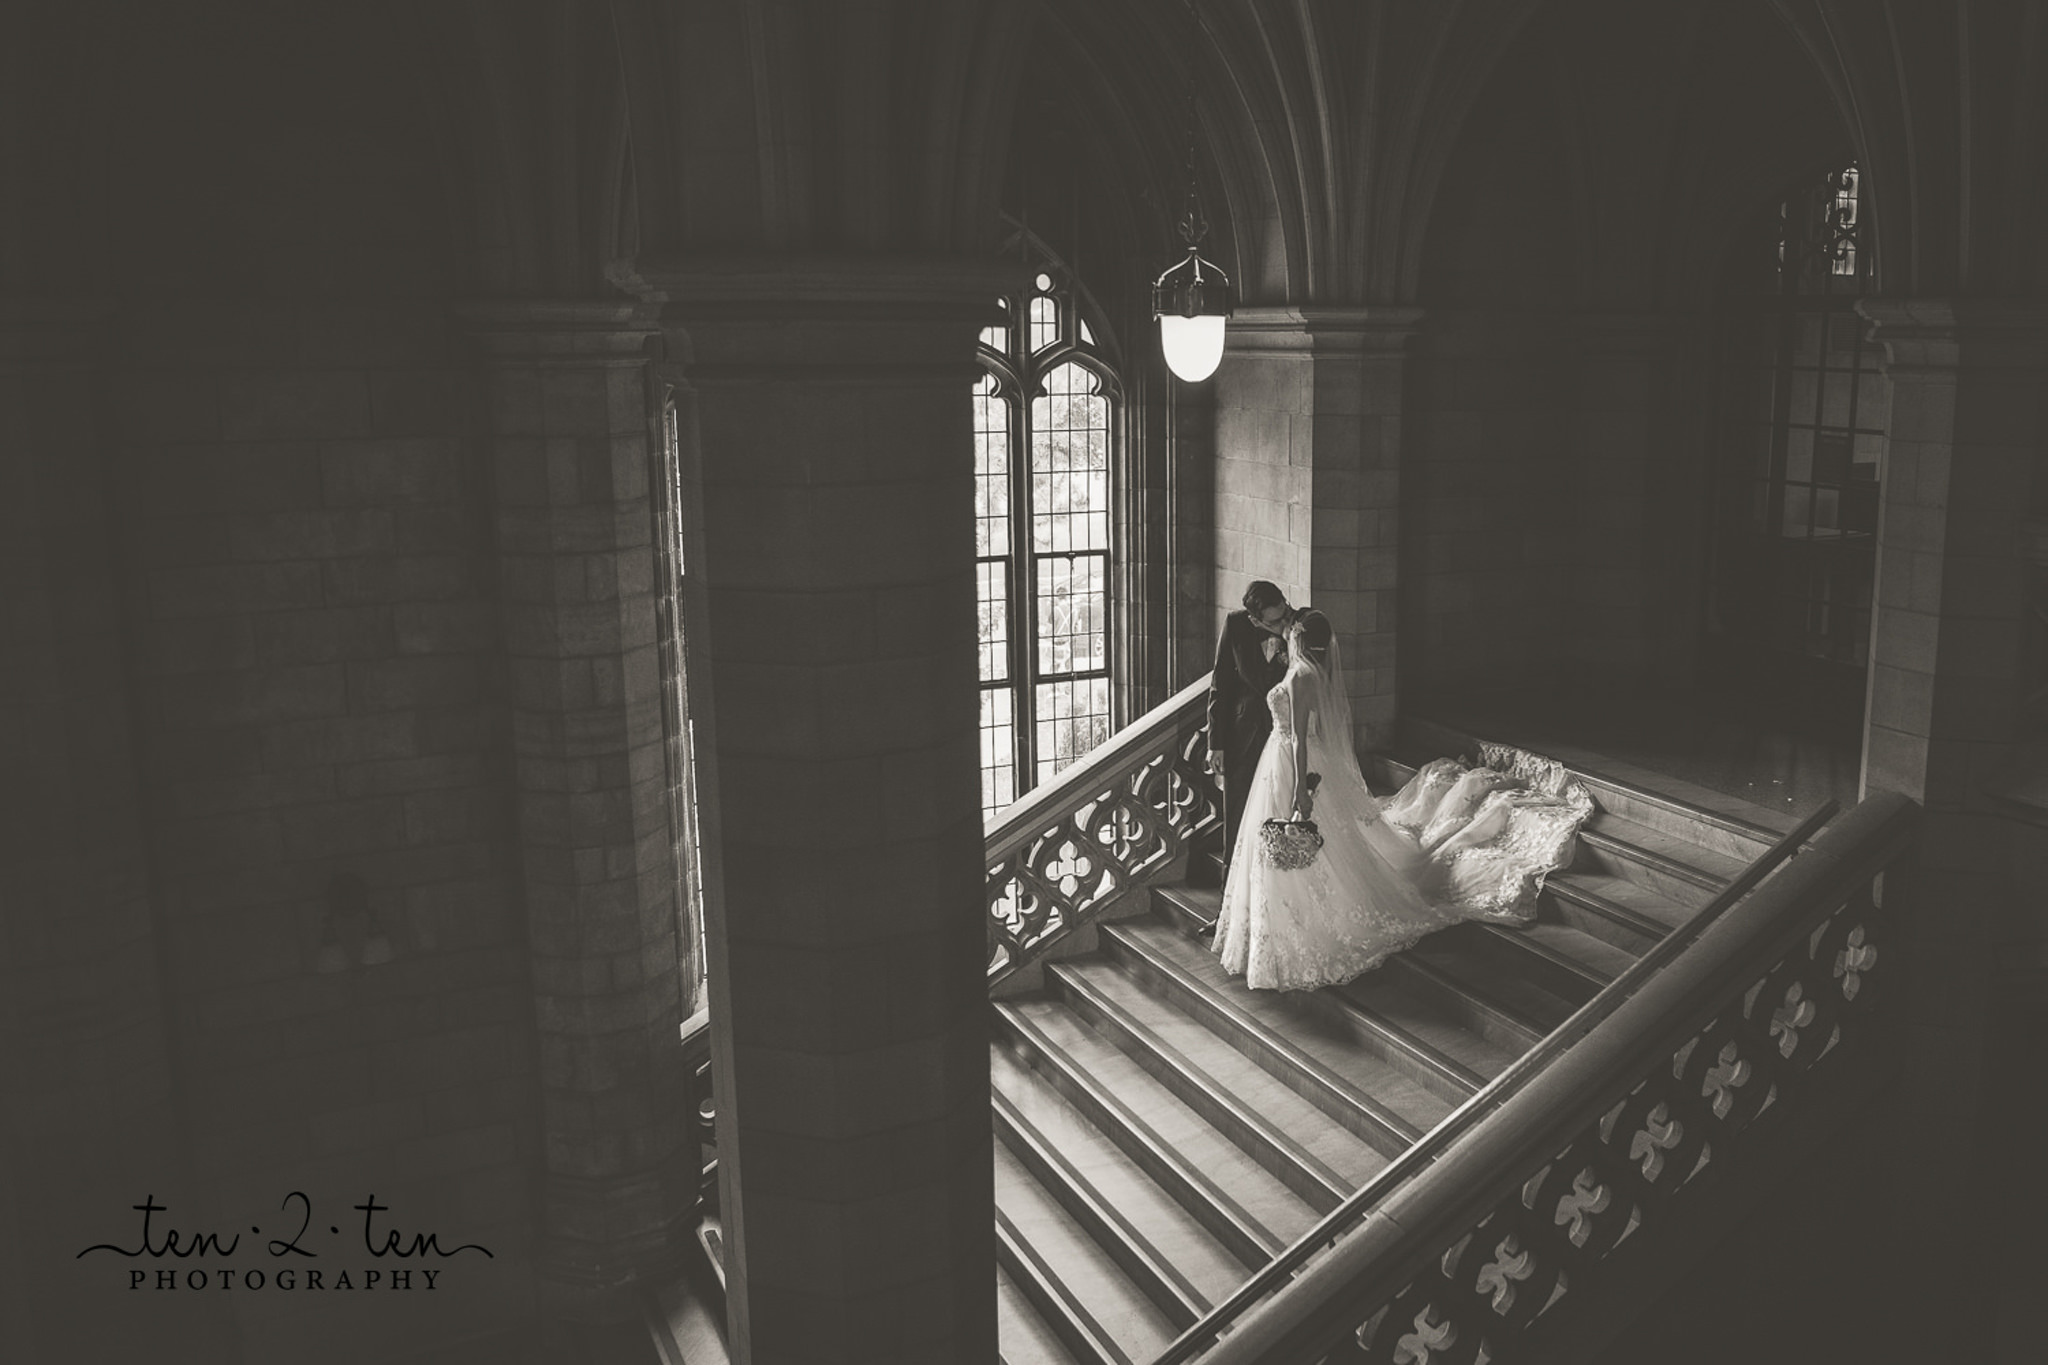 knox college wedding photos, knox college wedding, knox college wedding photography, rosewater room wedding photos, rosewater wedding photos